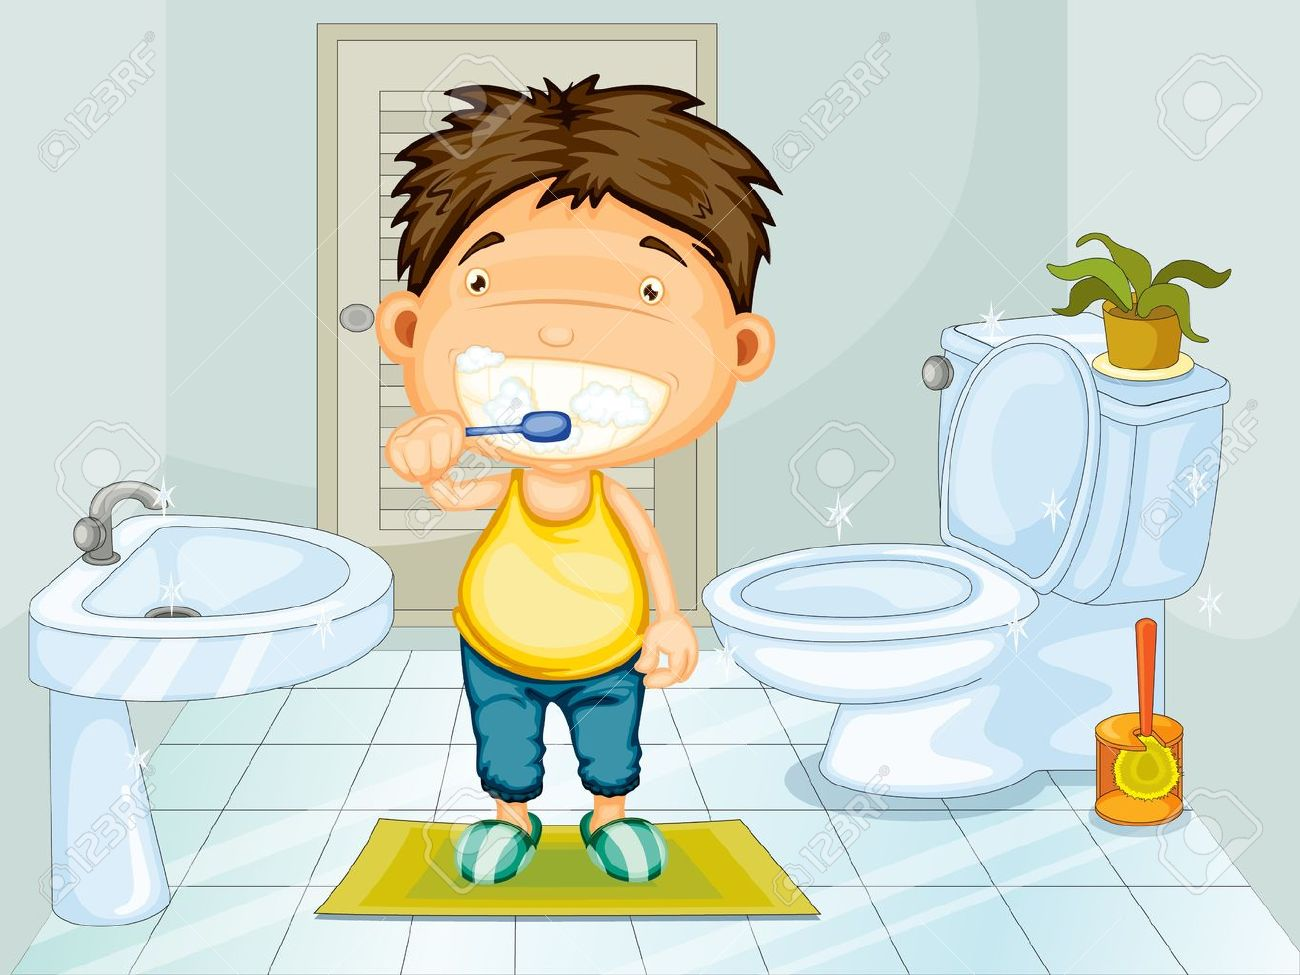 boy brushing teeth in bathroom royalty free cliparts, vectors, and